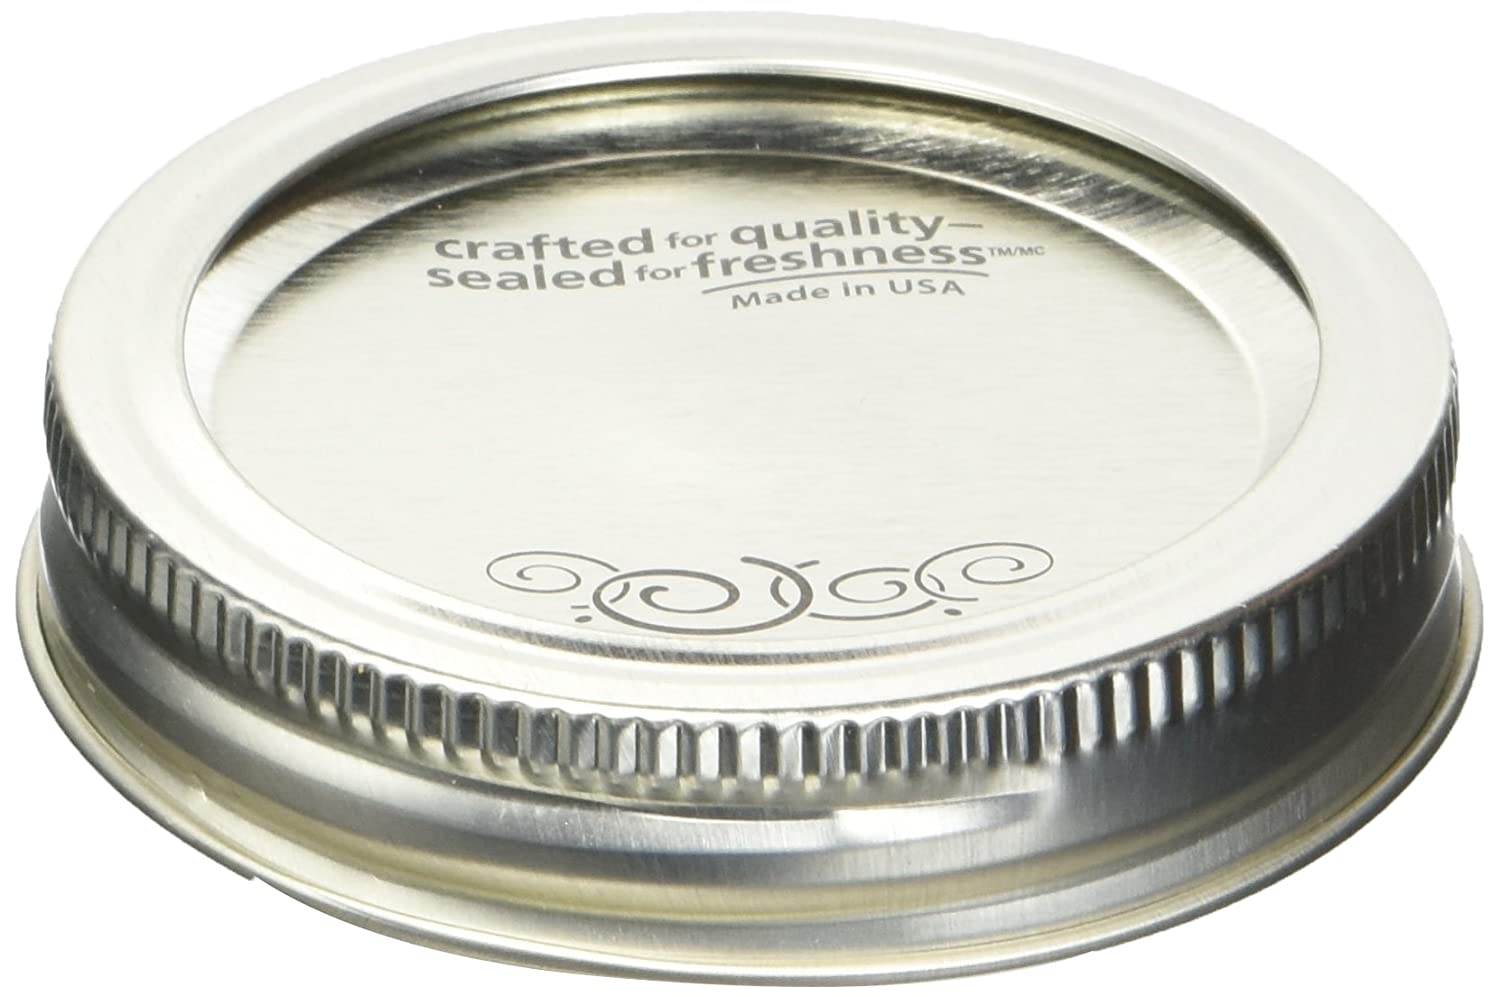 Kerr Regular Mouth Lids with Bands for Preserving, 12-Count